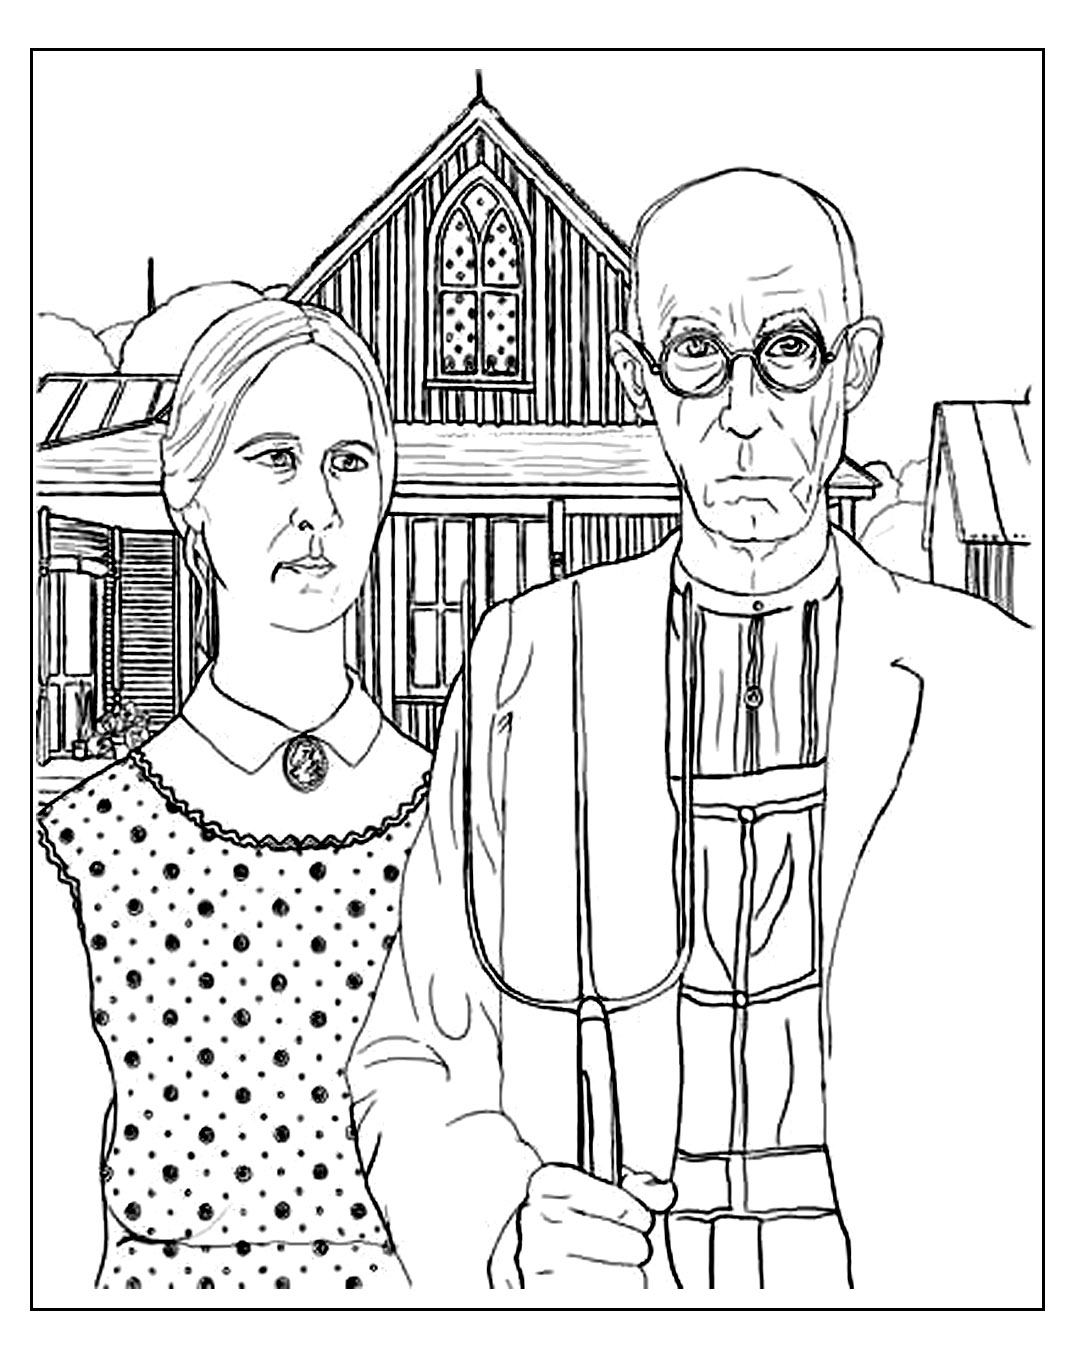 Grant Wood American Gothic Masterpieces Coloring Pages For